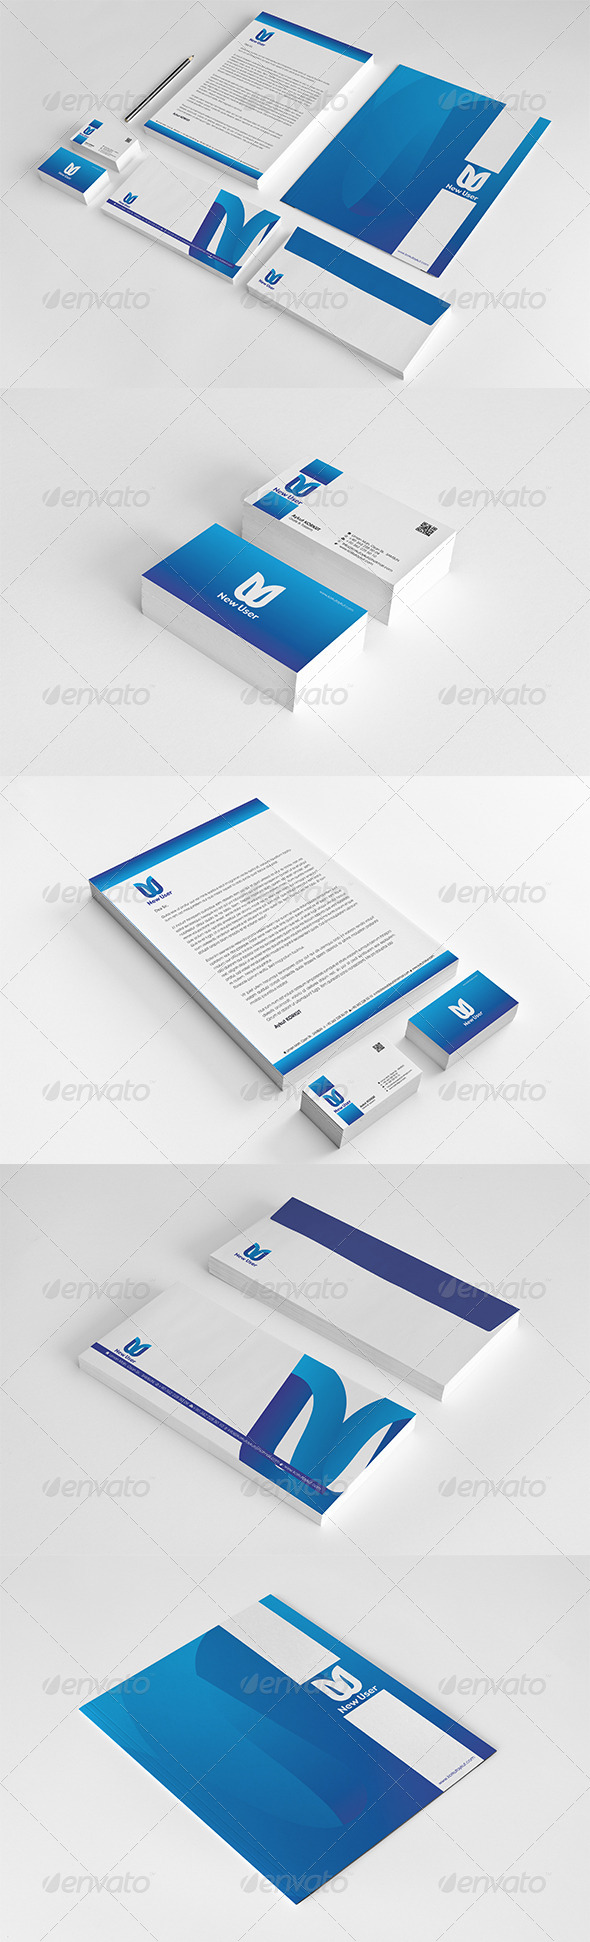 New User Corporate Identity Package  - Stationery Print Templates